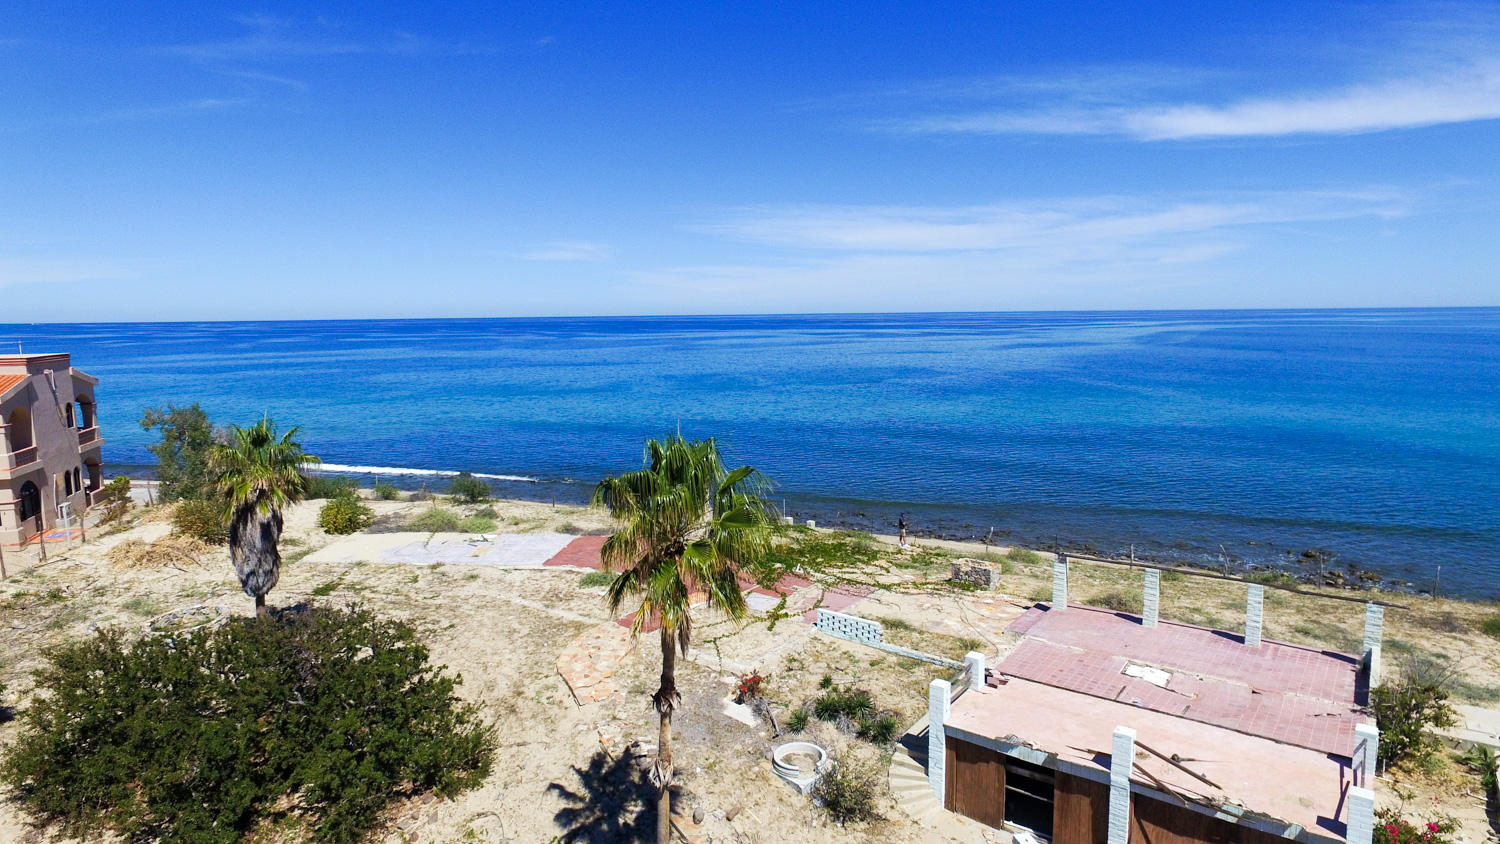 East Cape, ,Land,For Sale,Camino vecinal,20-200